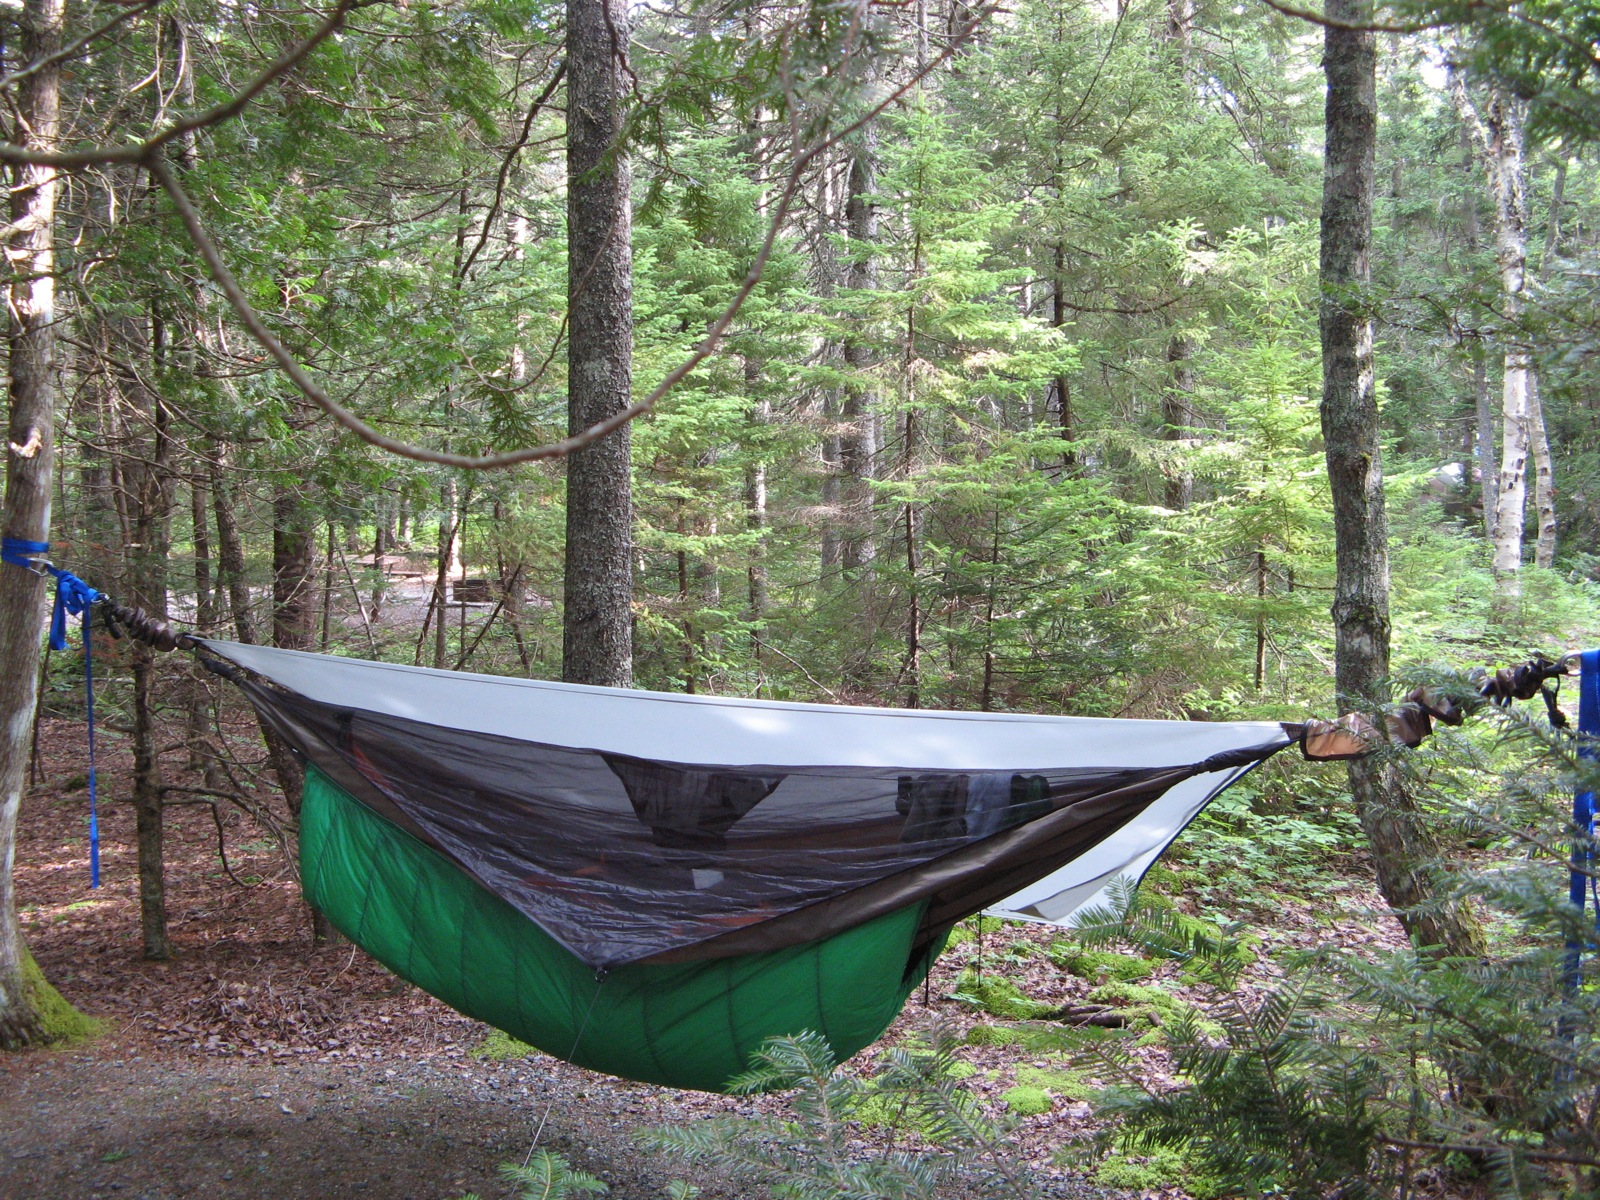 5 reasons why camping hammocks are awesome bug protection PC Graham and Dana Chapman via Flickr